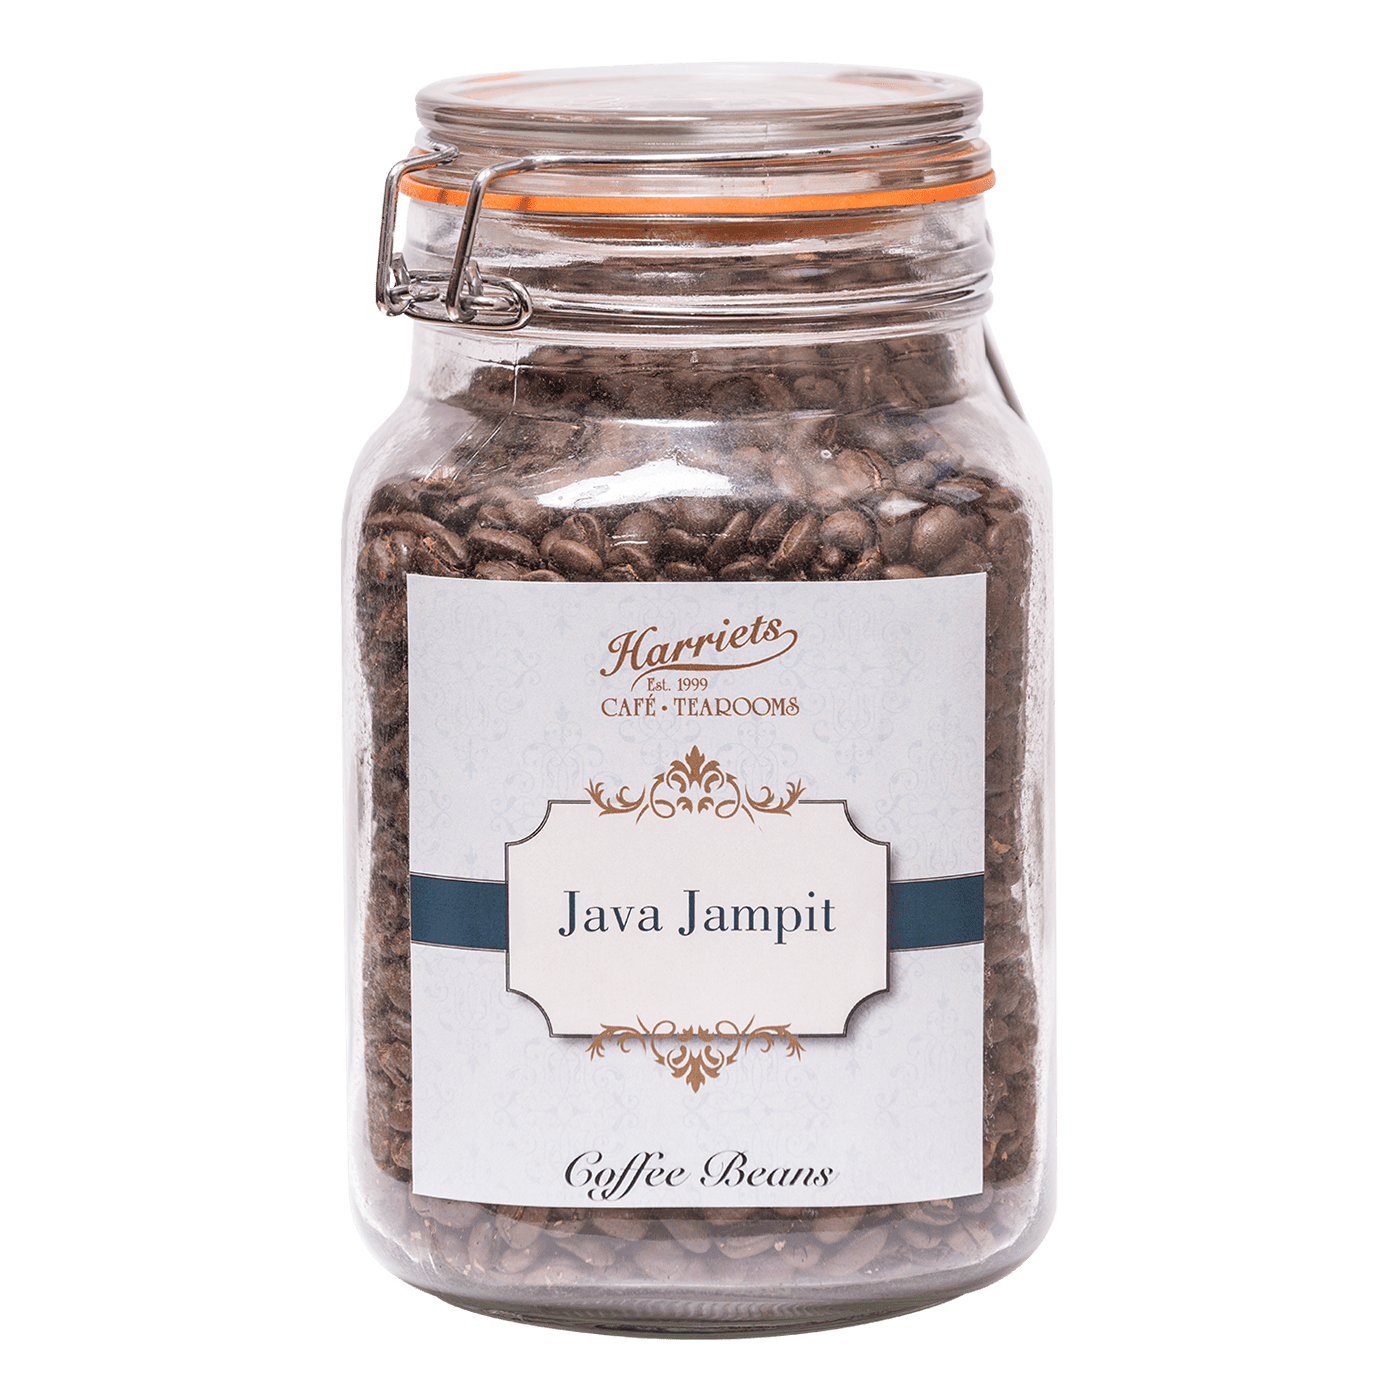 Java Jampit Coffee Beans